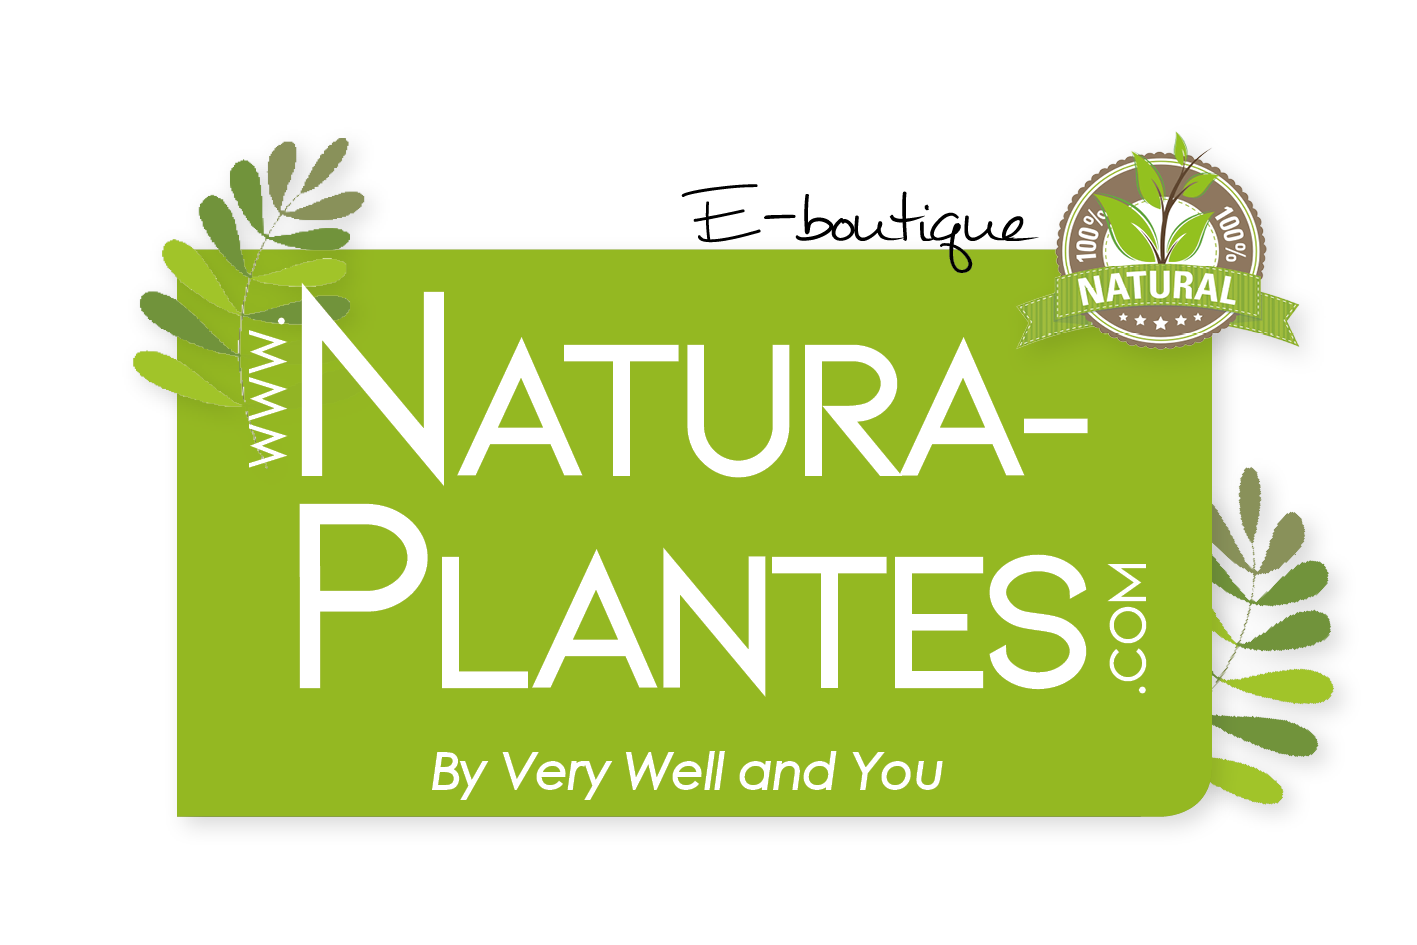 NATURA PLANTES by VERY WELL AND YOU